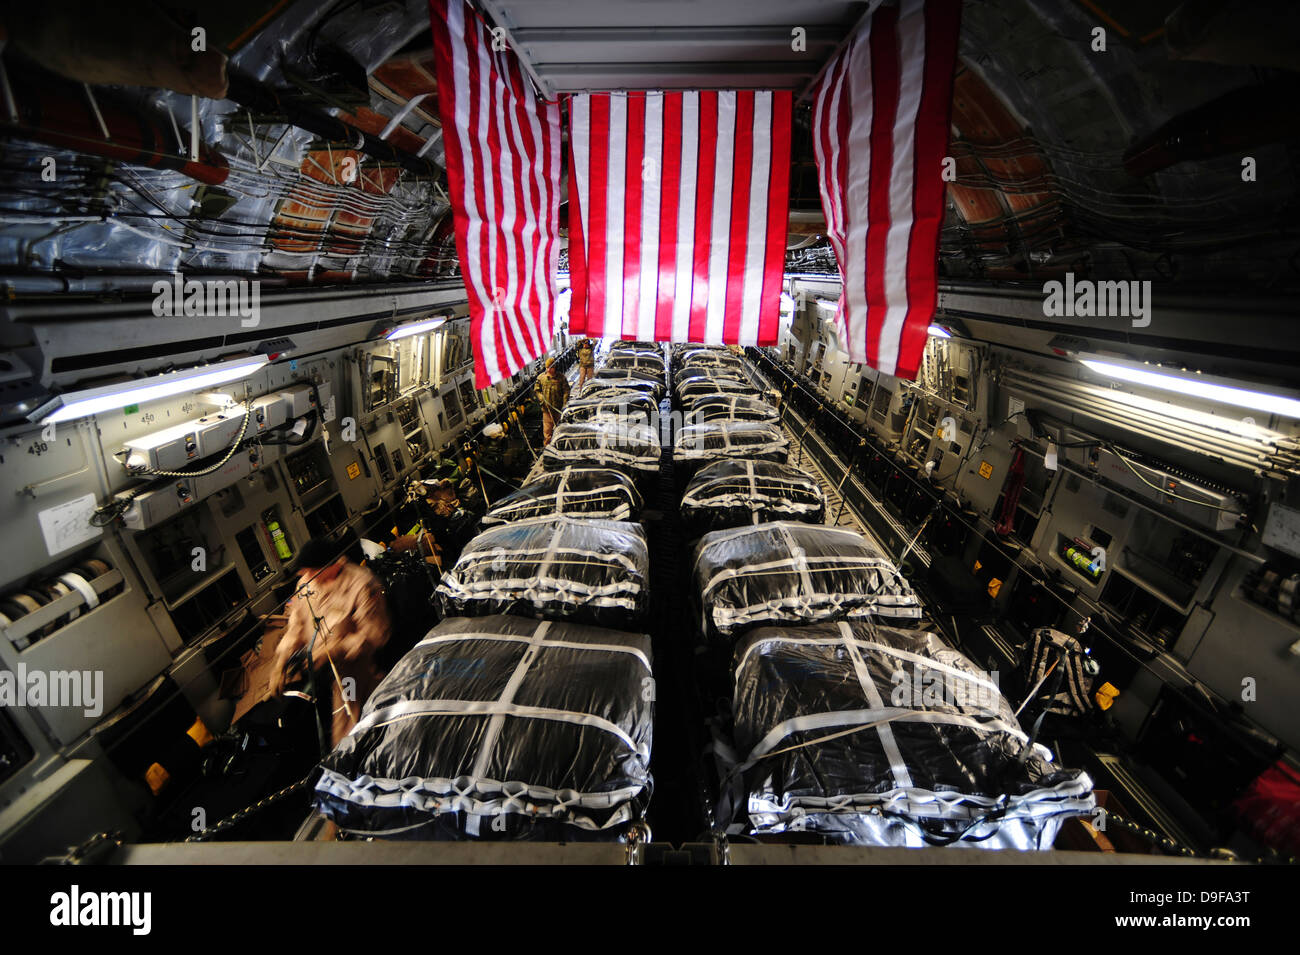 Pallets of cargo inside of a C-17 Globemaster III before conducting air delivery operations over Afghanistan. - Stock Image